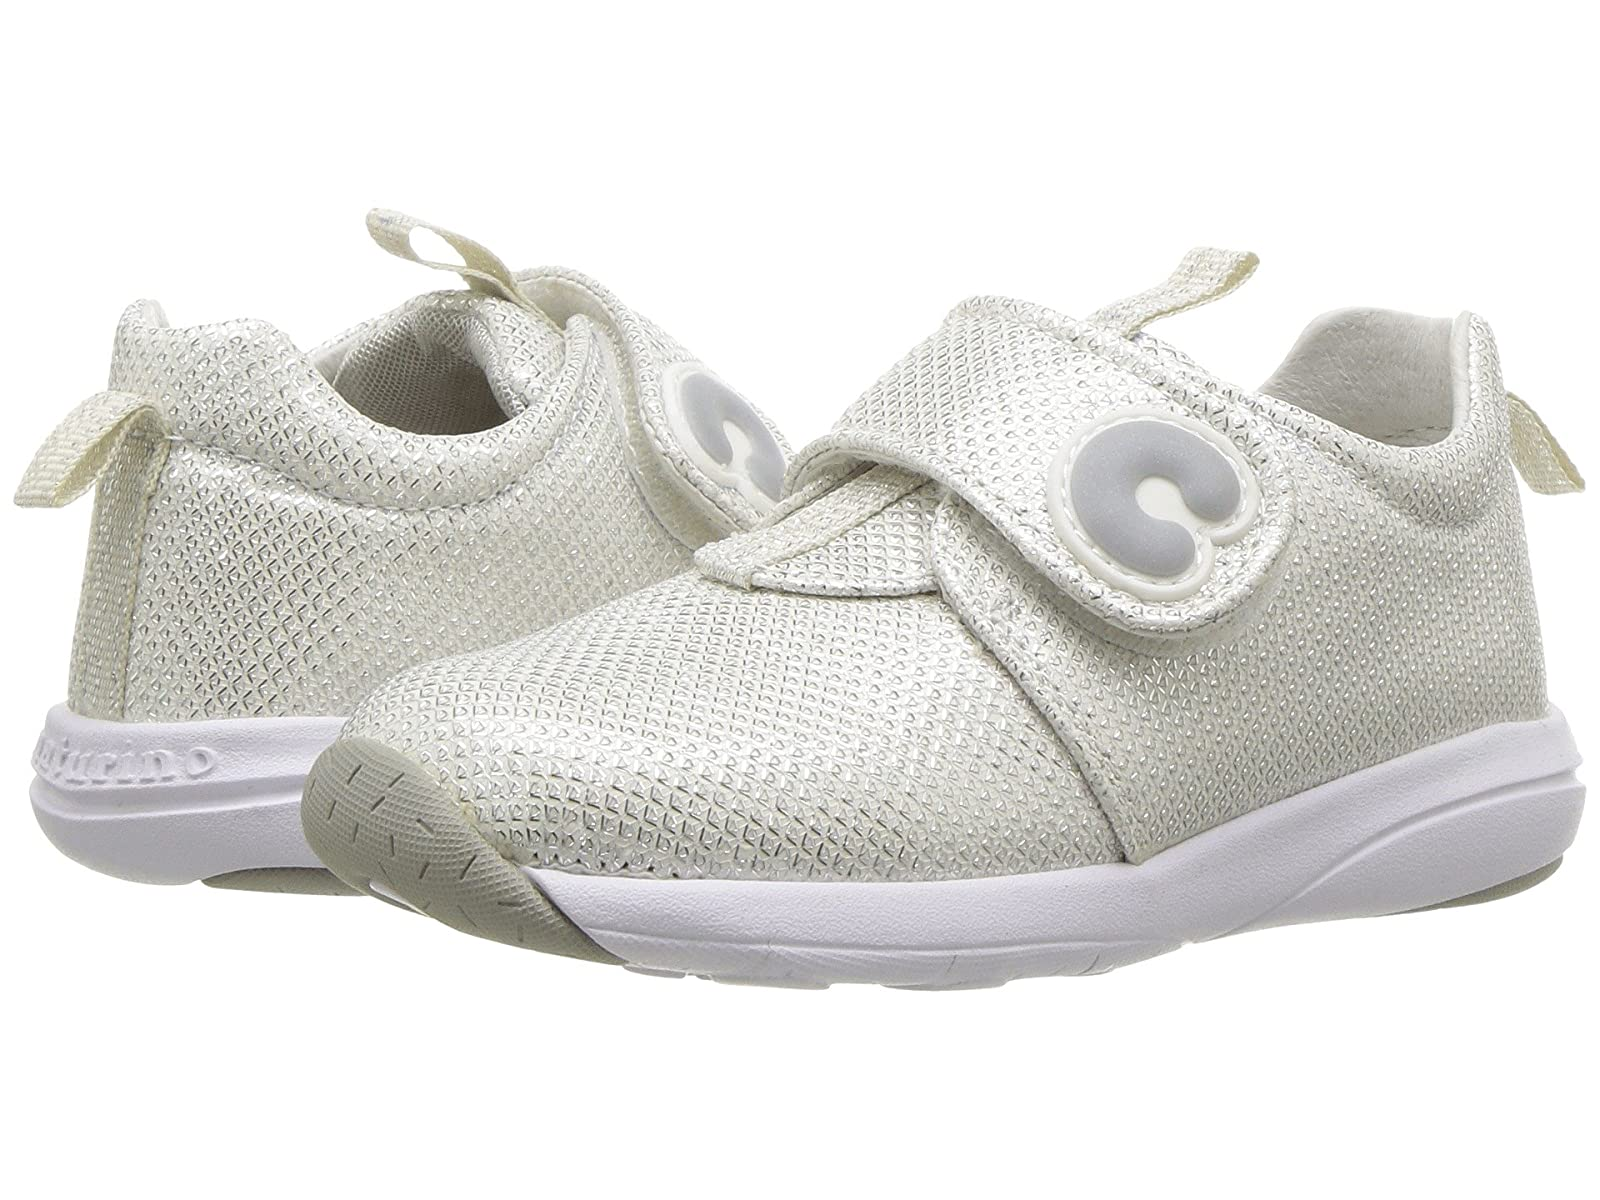 Naturino Candy VL SS18 (Toddler/Little Kid)Atmospheric grades have affordable shoes